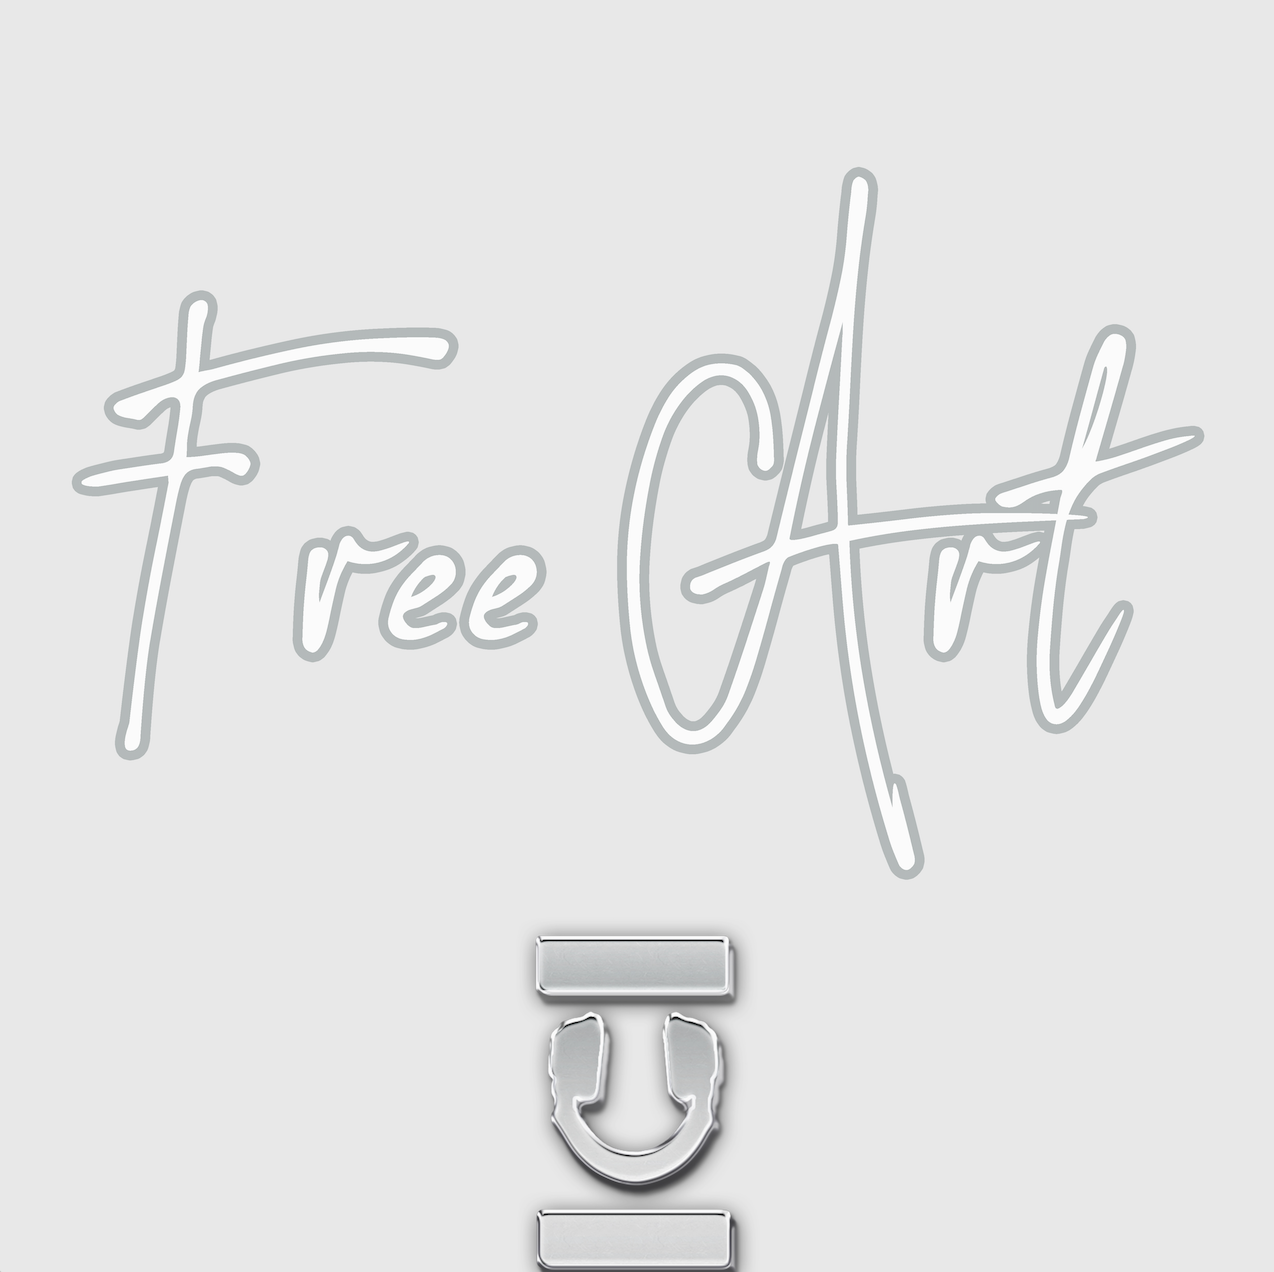 Free Art  - Sound Kit